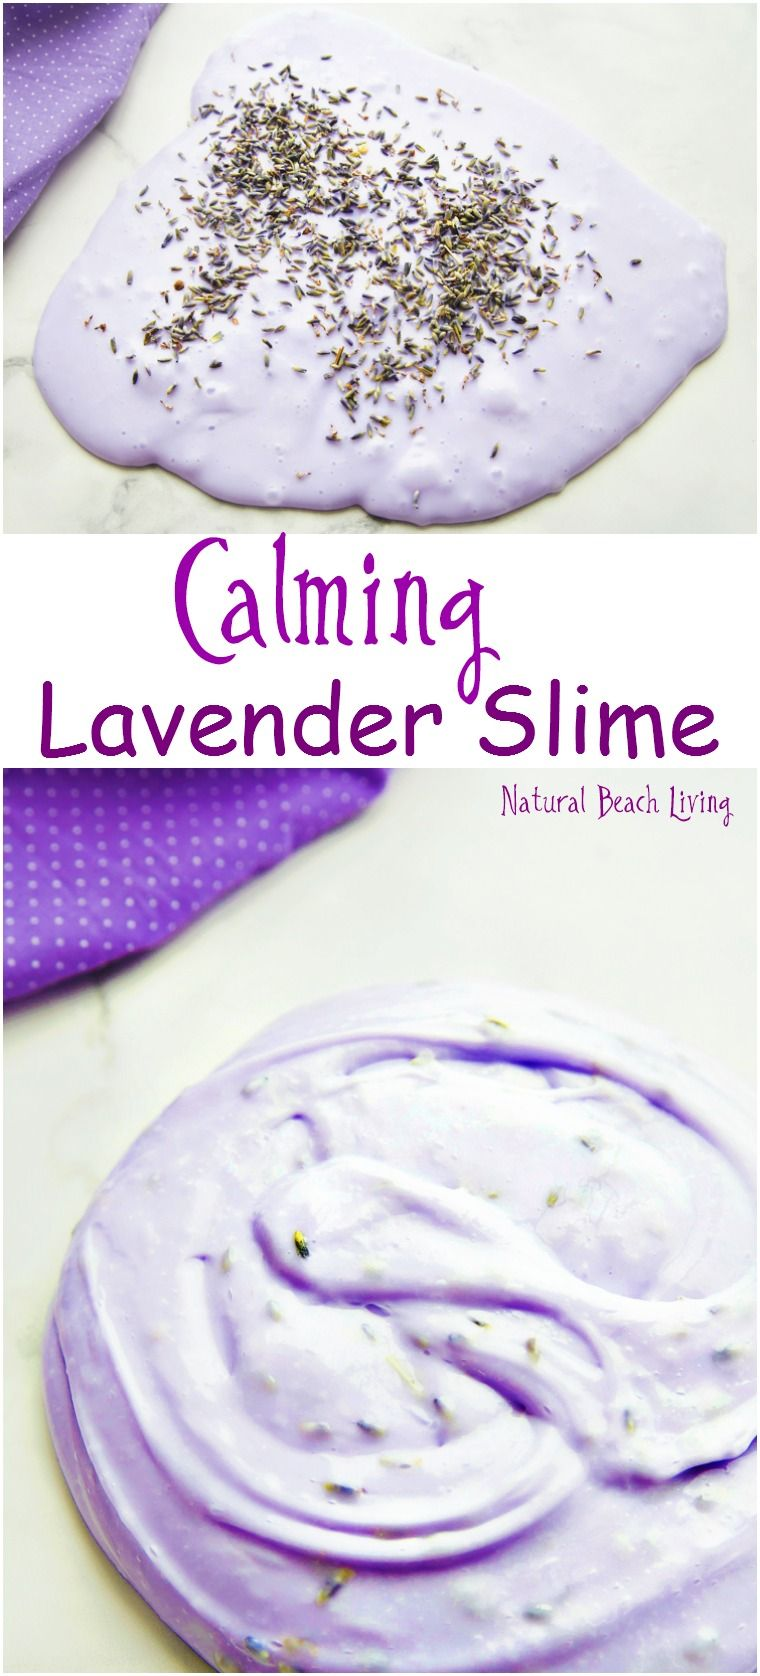 Calming Lavender Slime Recipe Kids and Adults Love is part of Kids Crafts Science Slime Recipe - Calming Lavender Slime Recipe To Try Right Now, Anti Stress Slime Recipe, aromatherapy Slime Recipe, The Best Liquid Starch Slime, The Best Calming Lavender Slime Recipe, How to make The Best Calming Jiggly Slime Recipe, how to make Anxiety Slime, Slime Recipe with essential oils, A Wonderful Therapeutic Slime Recipe, Slime Science, Plus Slime Videos with How to Make Slime Instructions and DIY Slime Recipes